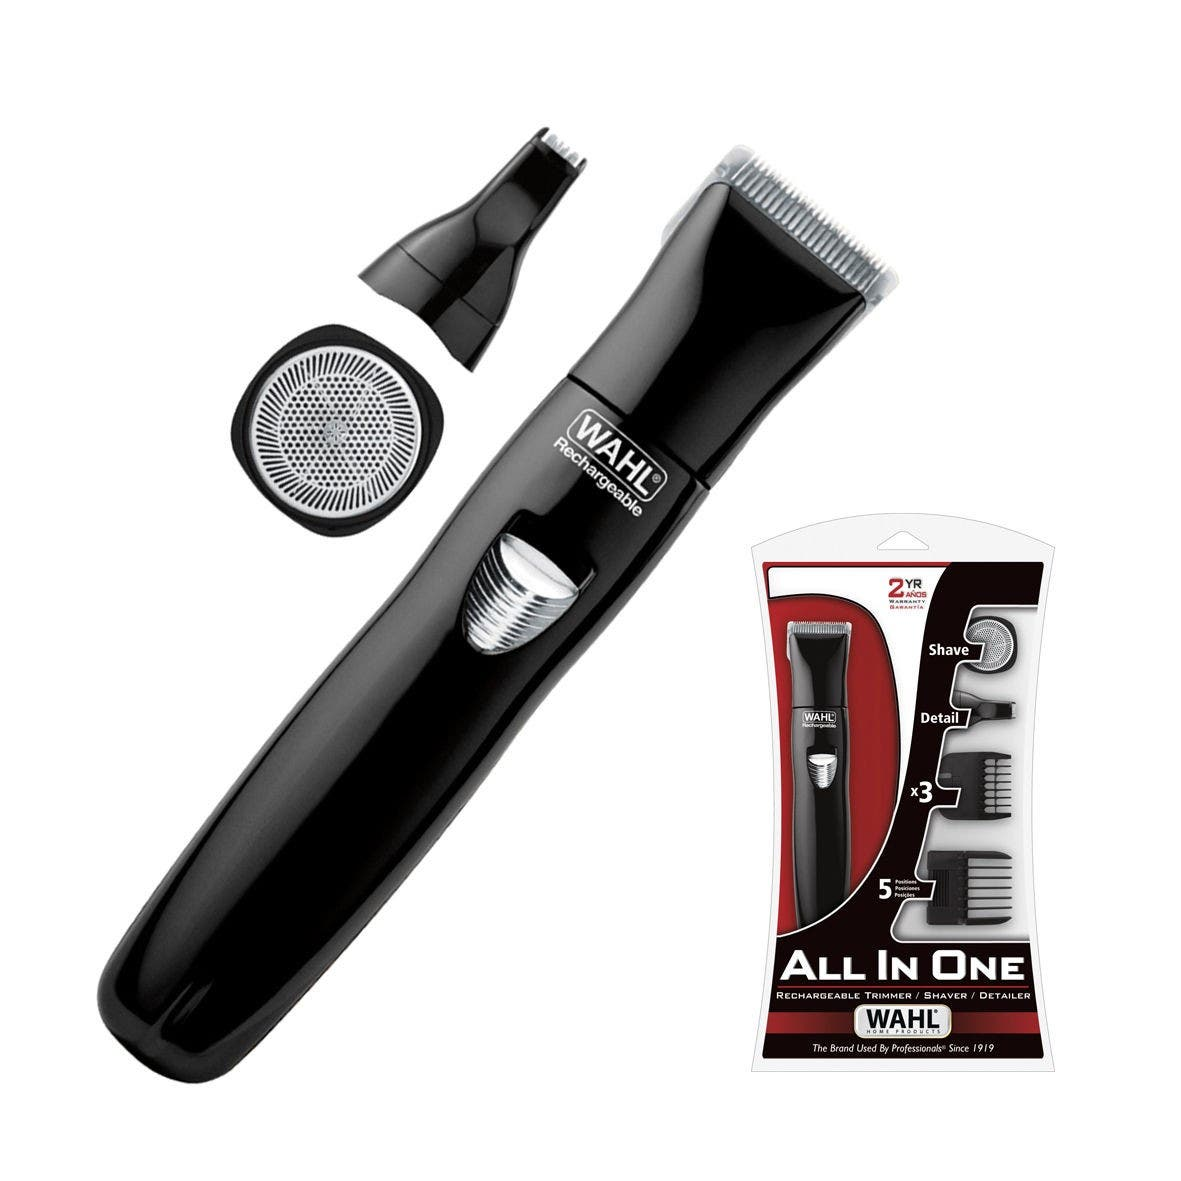 Wahl All In One Trimmer Shaver Detailer Rechargeable Cordless